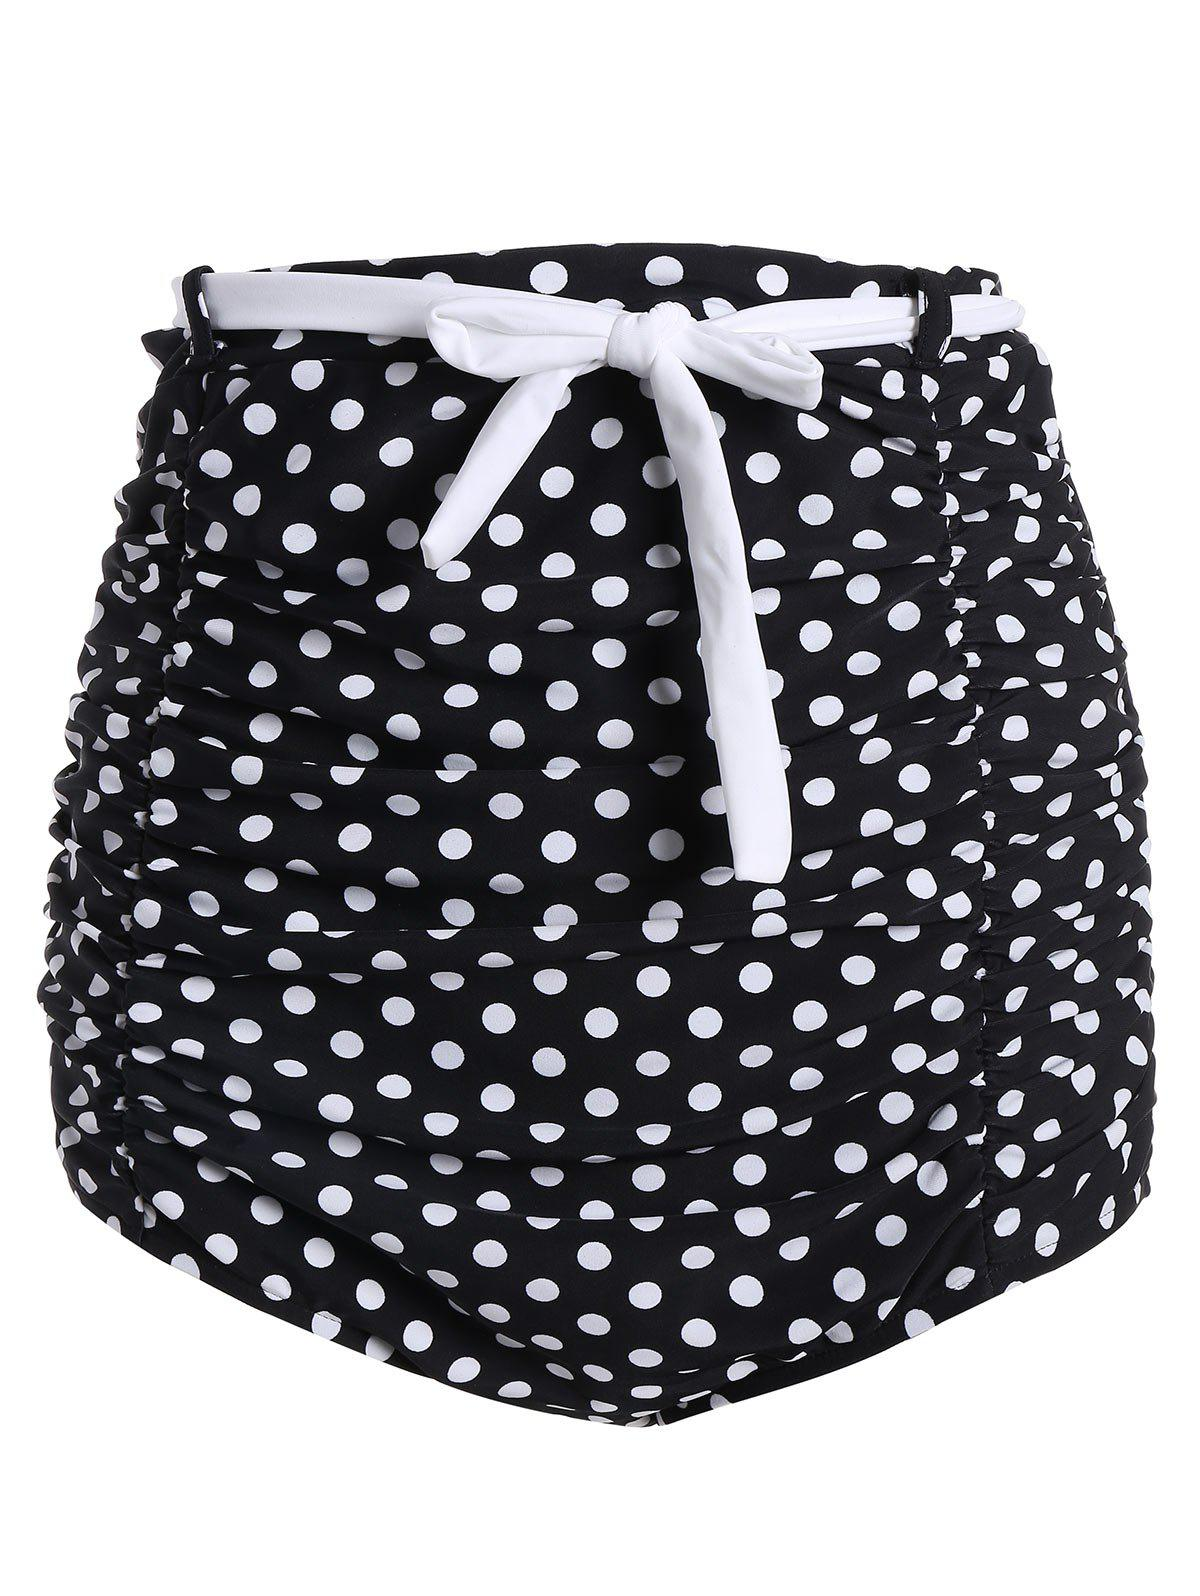 Polka Dot Ruched High Waisted Bikini Bottom Shorts - BLACK L